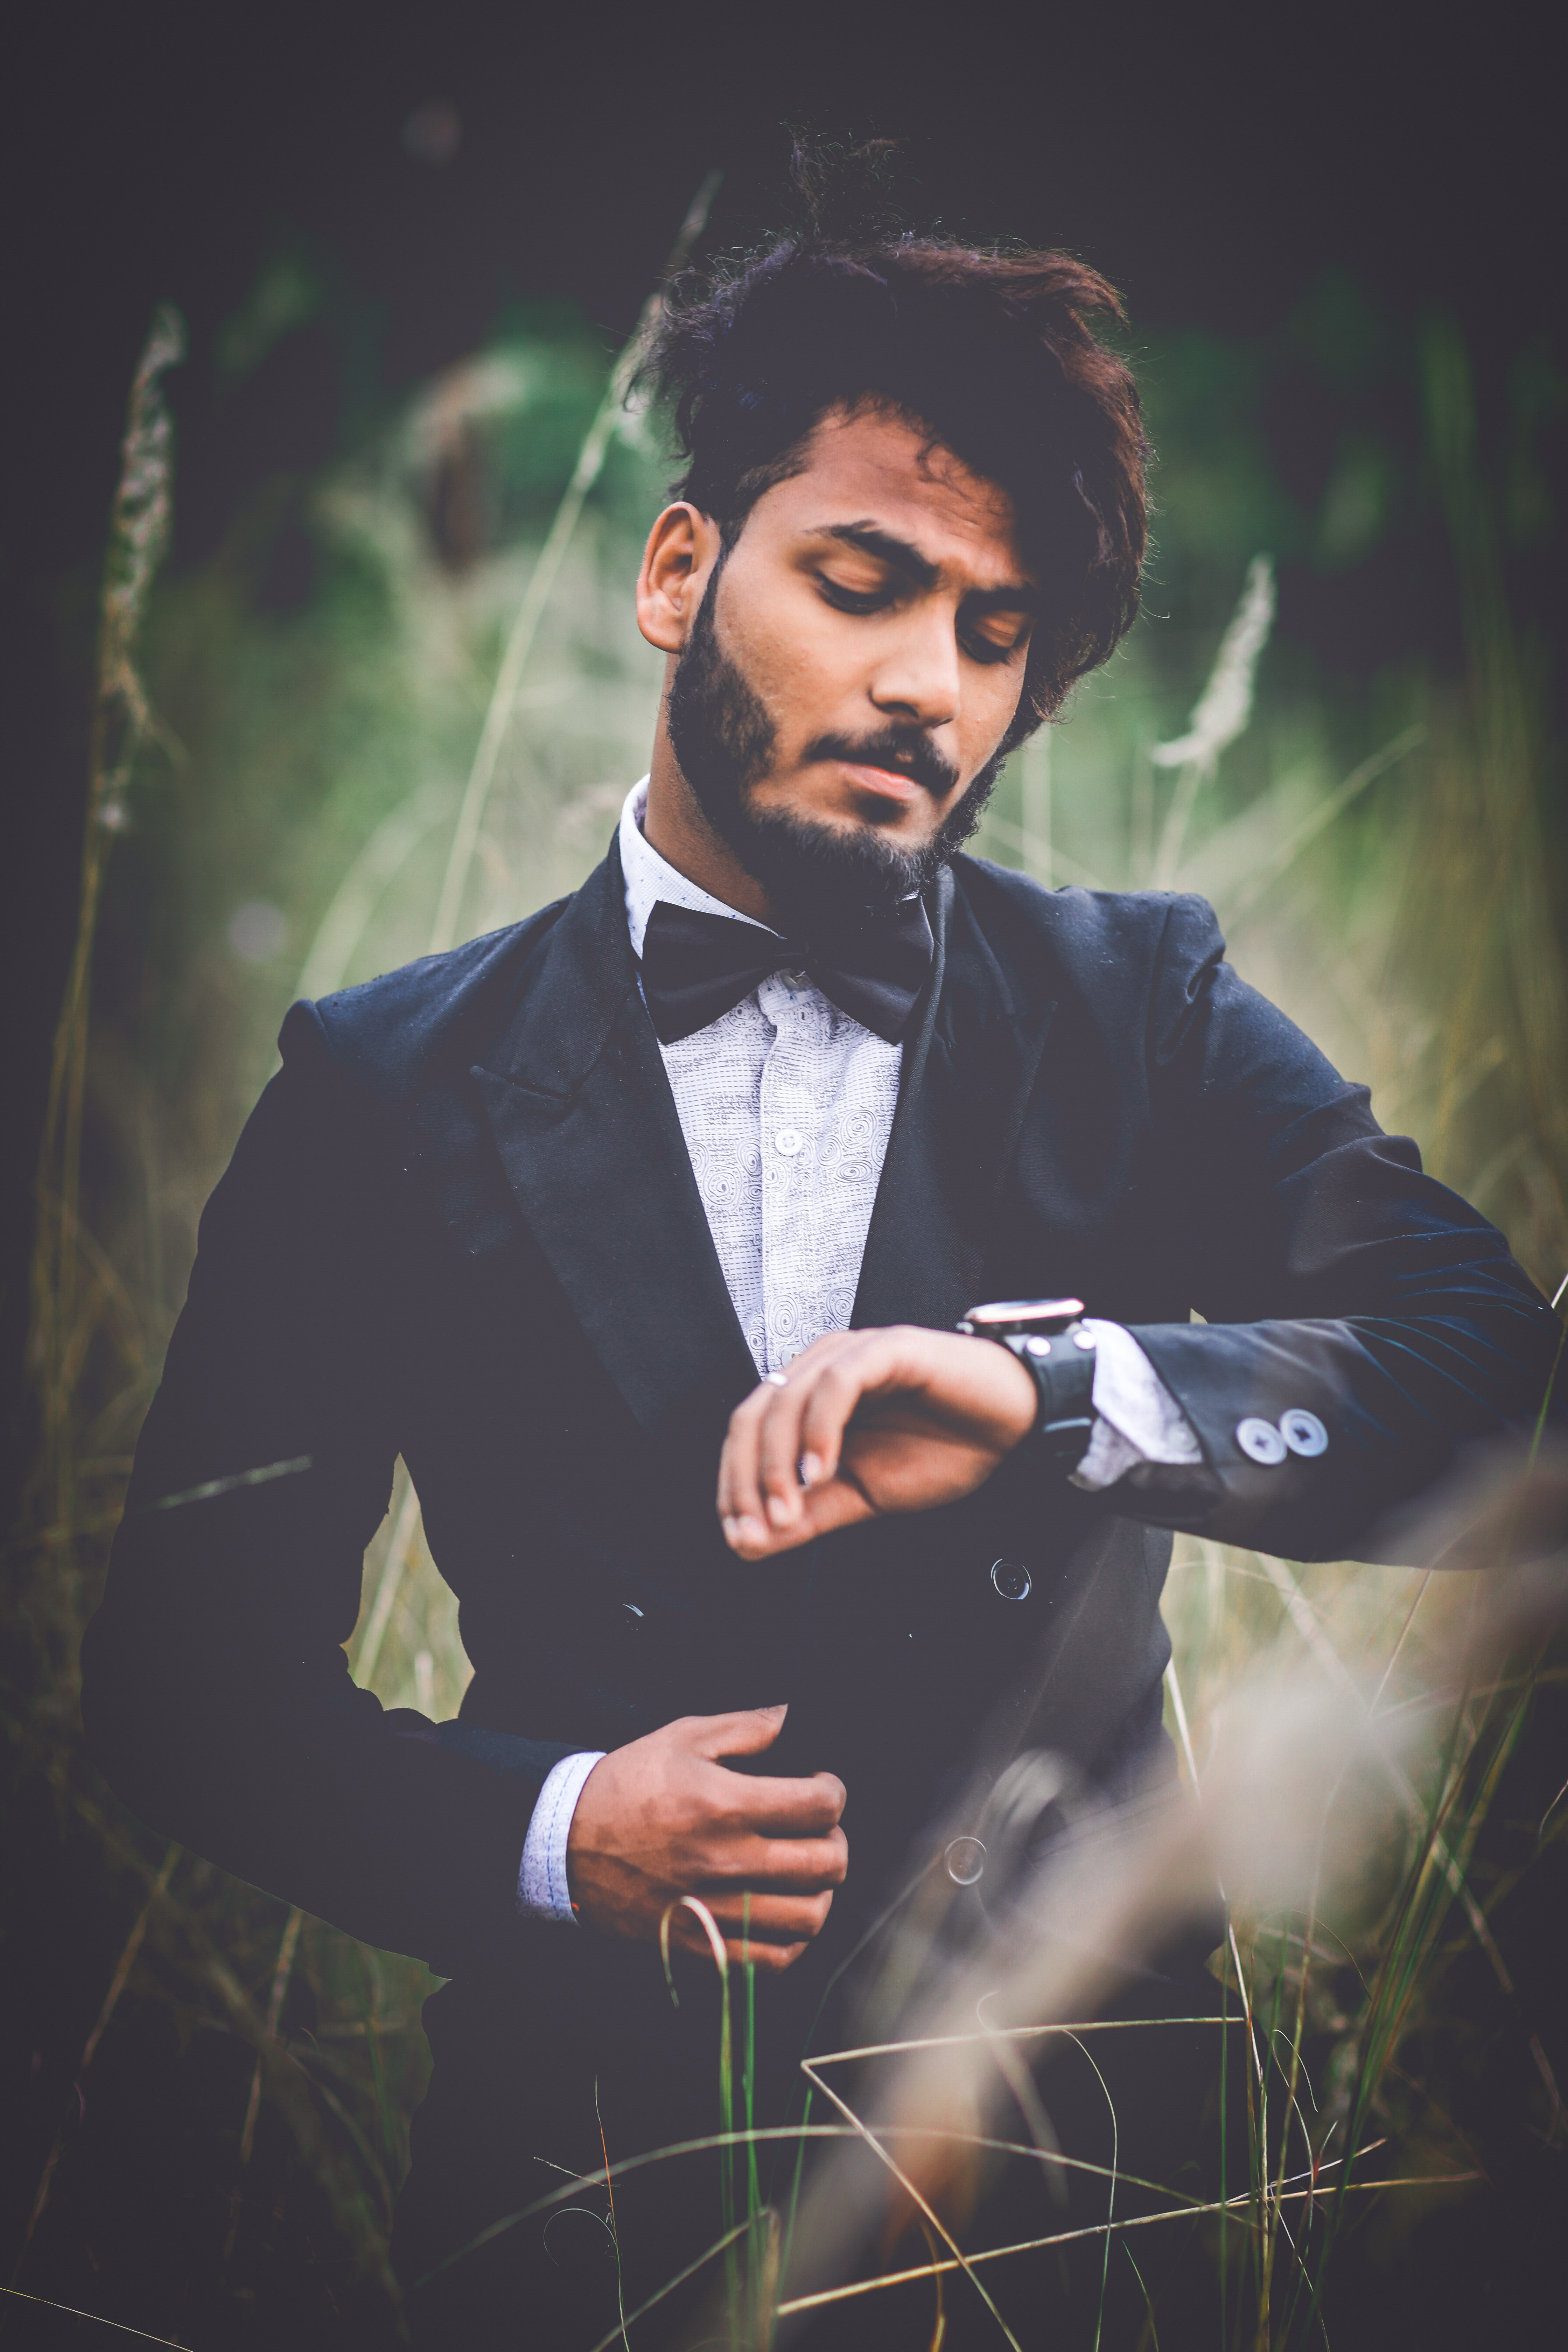 Man in tuxedo suit surrounded by grass photo